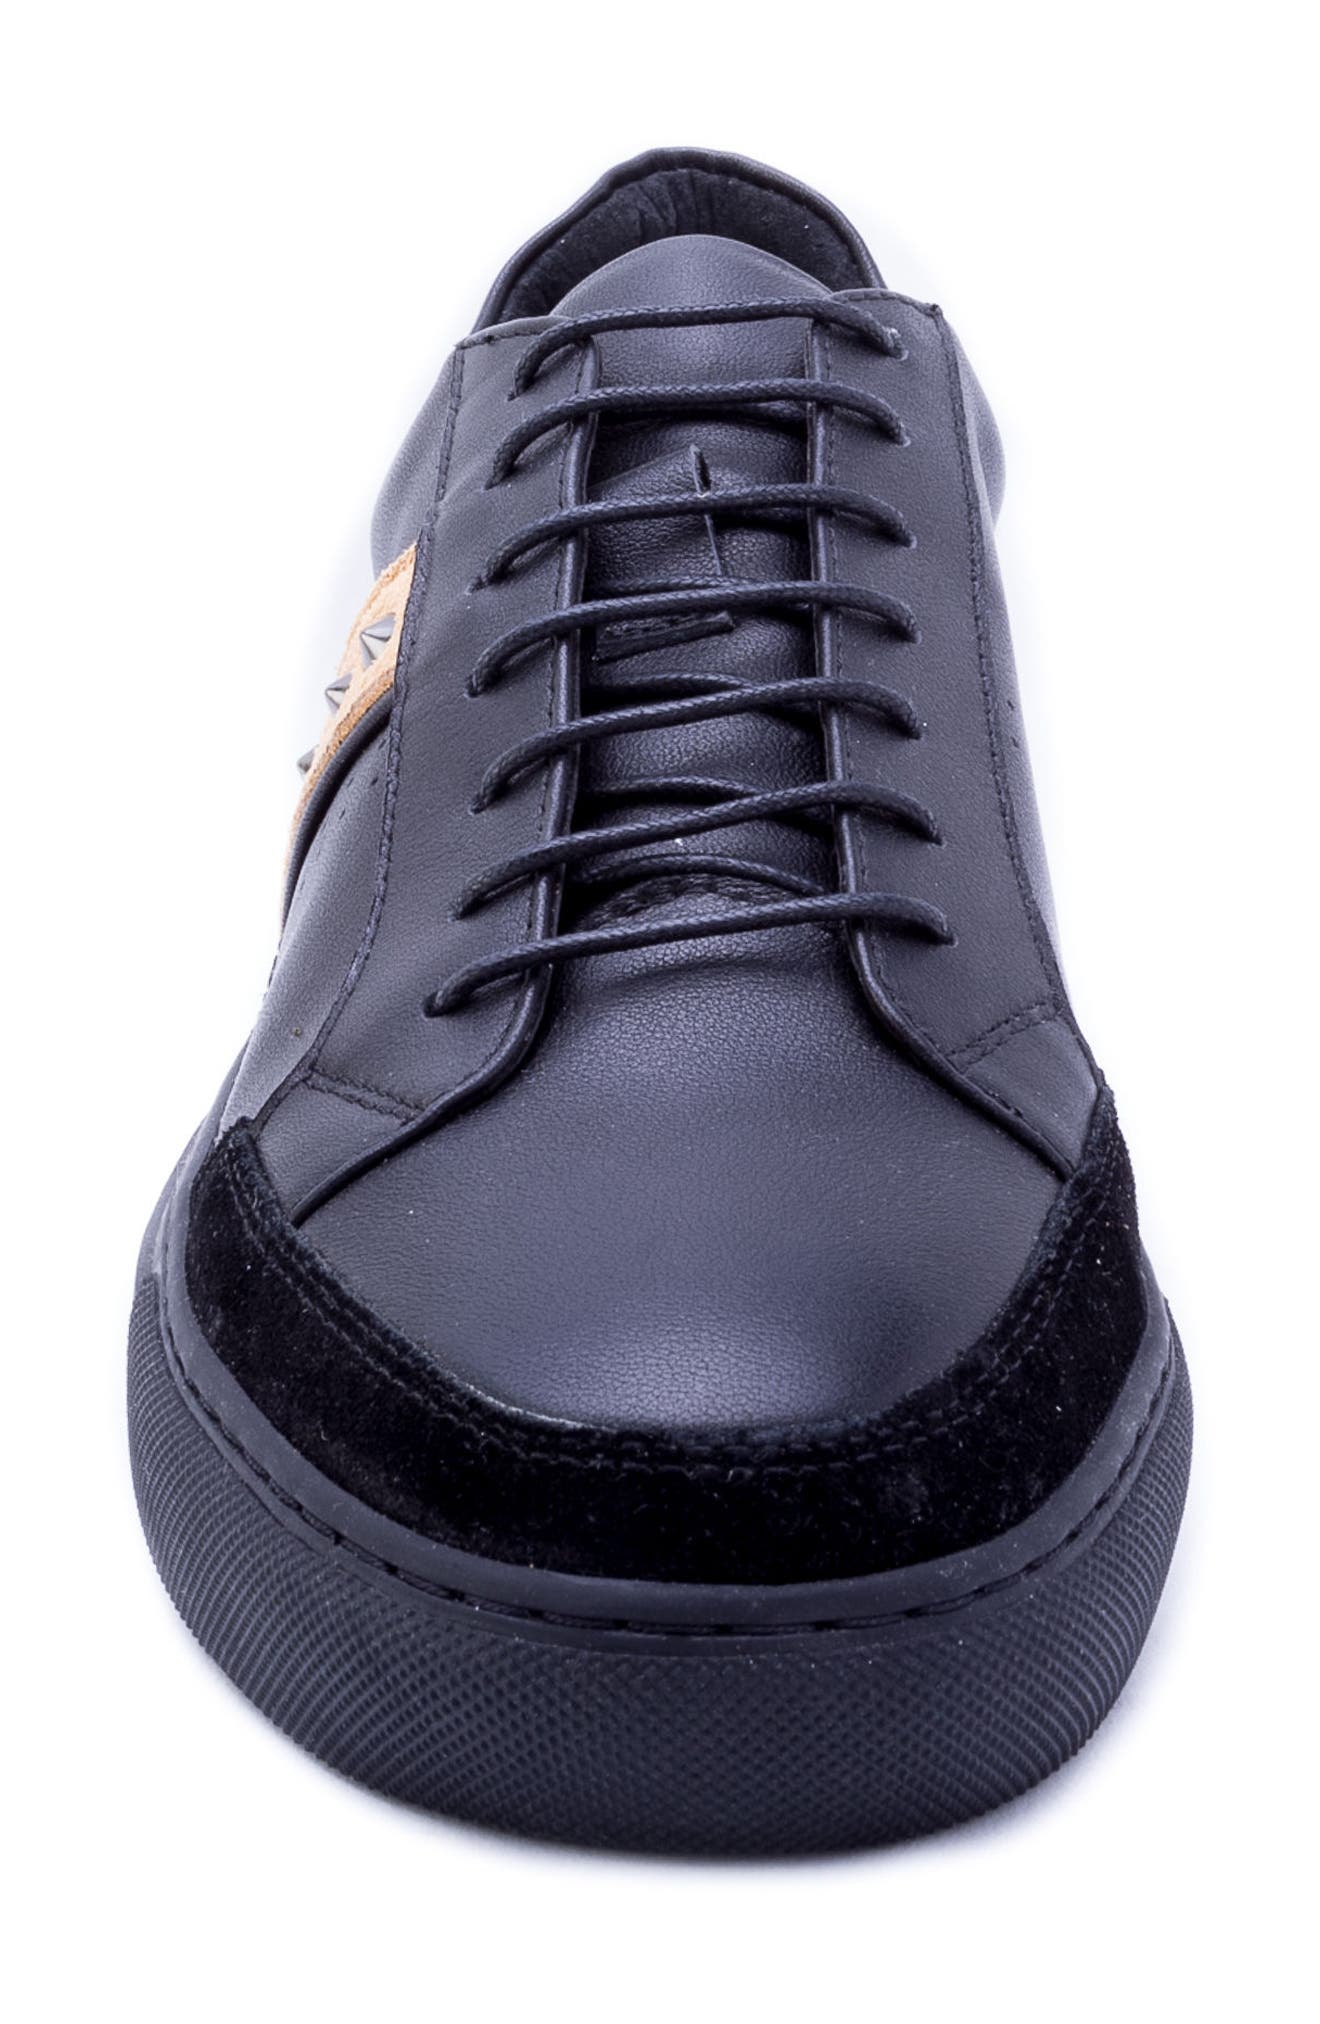 Badgley Mischka Connery Sneaker,                             Alternate thumbnail 4, color,                             BLACK LEATHER